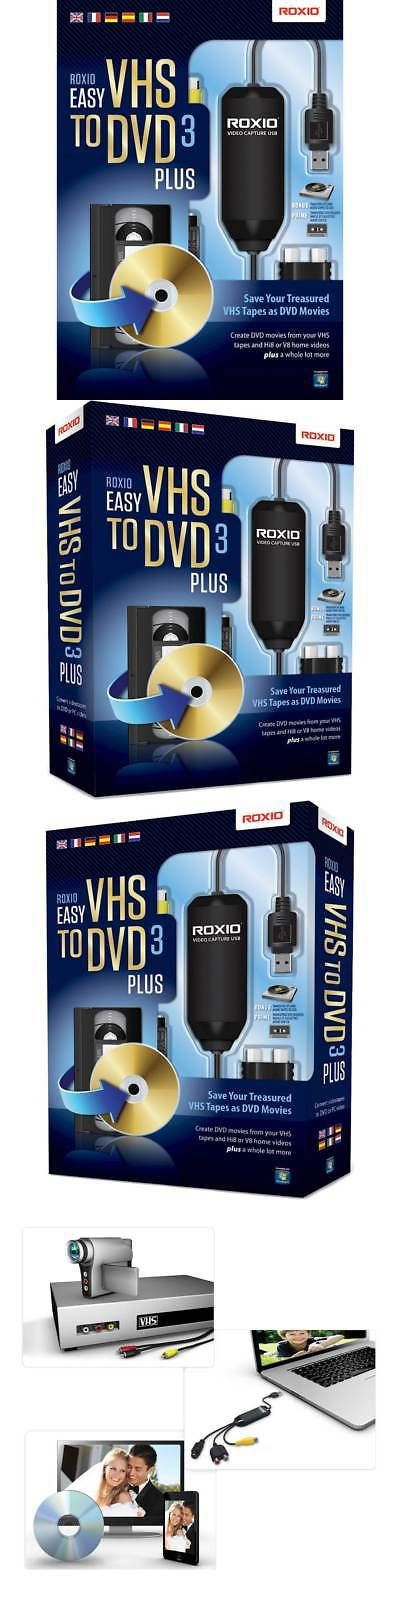 Image Video And Audio 41859 Easy Vhs To Dvd 3 Plus Windows Buy It Now Only 39 99 On Ebay Image Video Audio Windows Vhs To Dvd Vhs Dvd